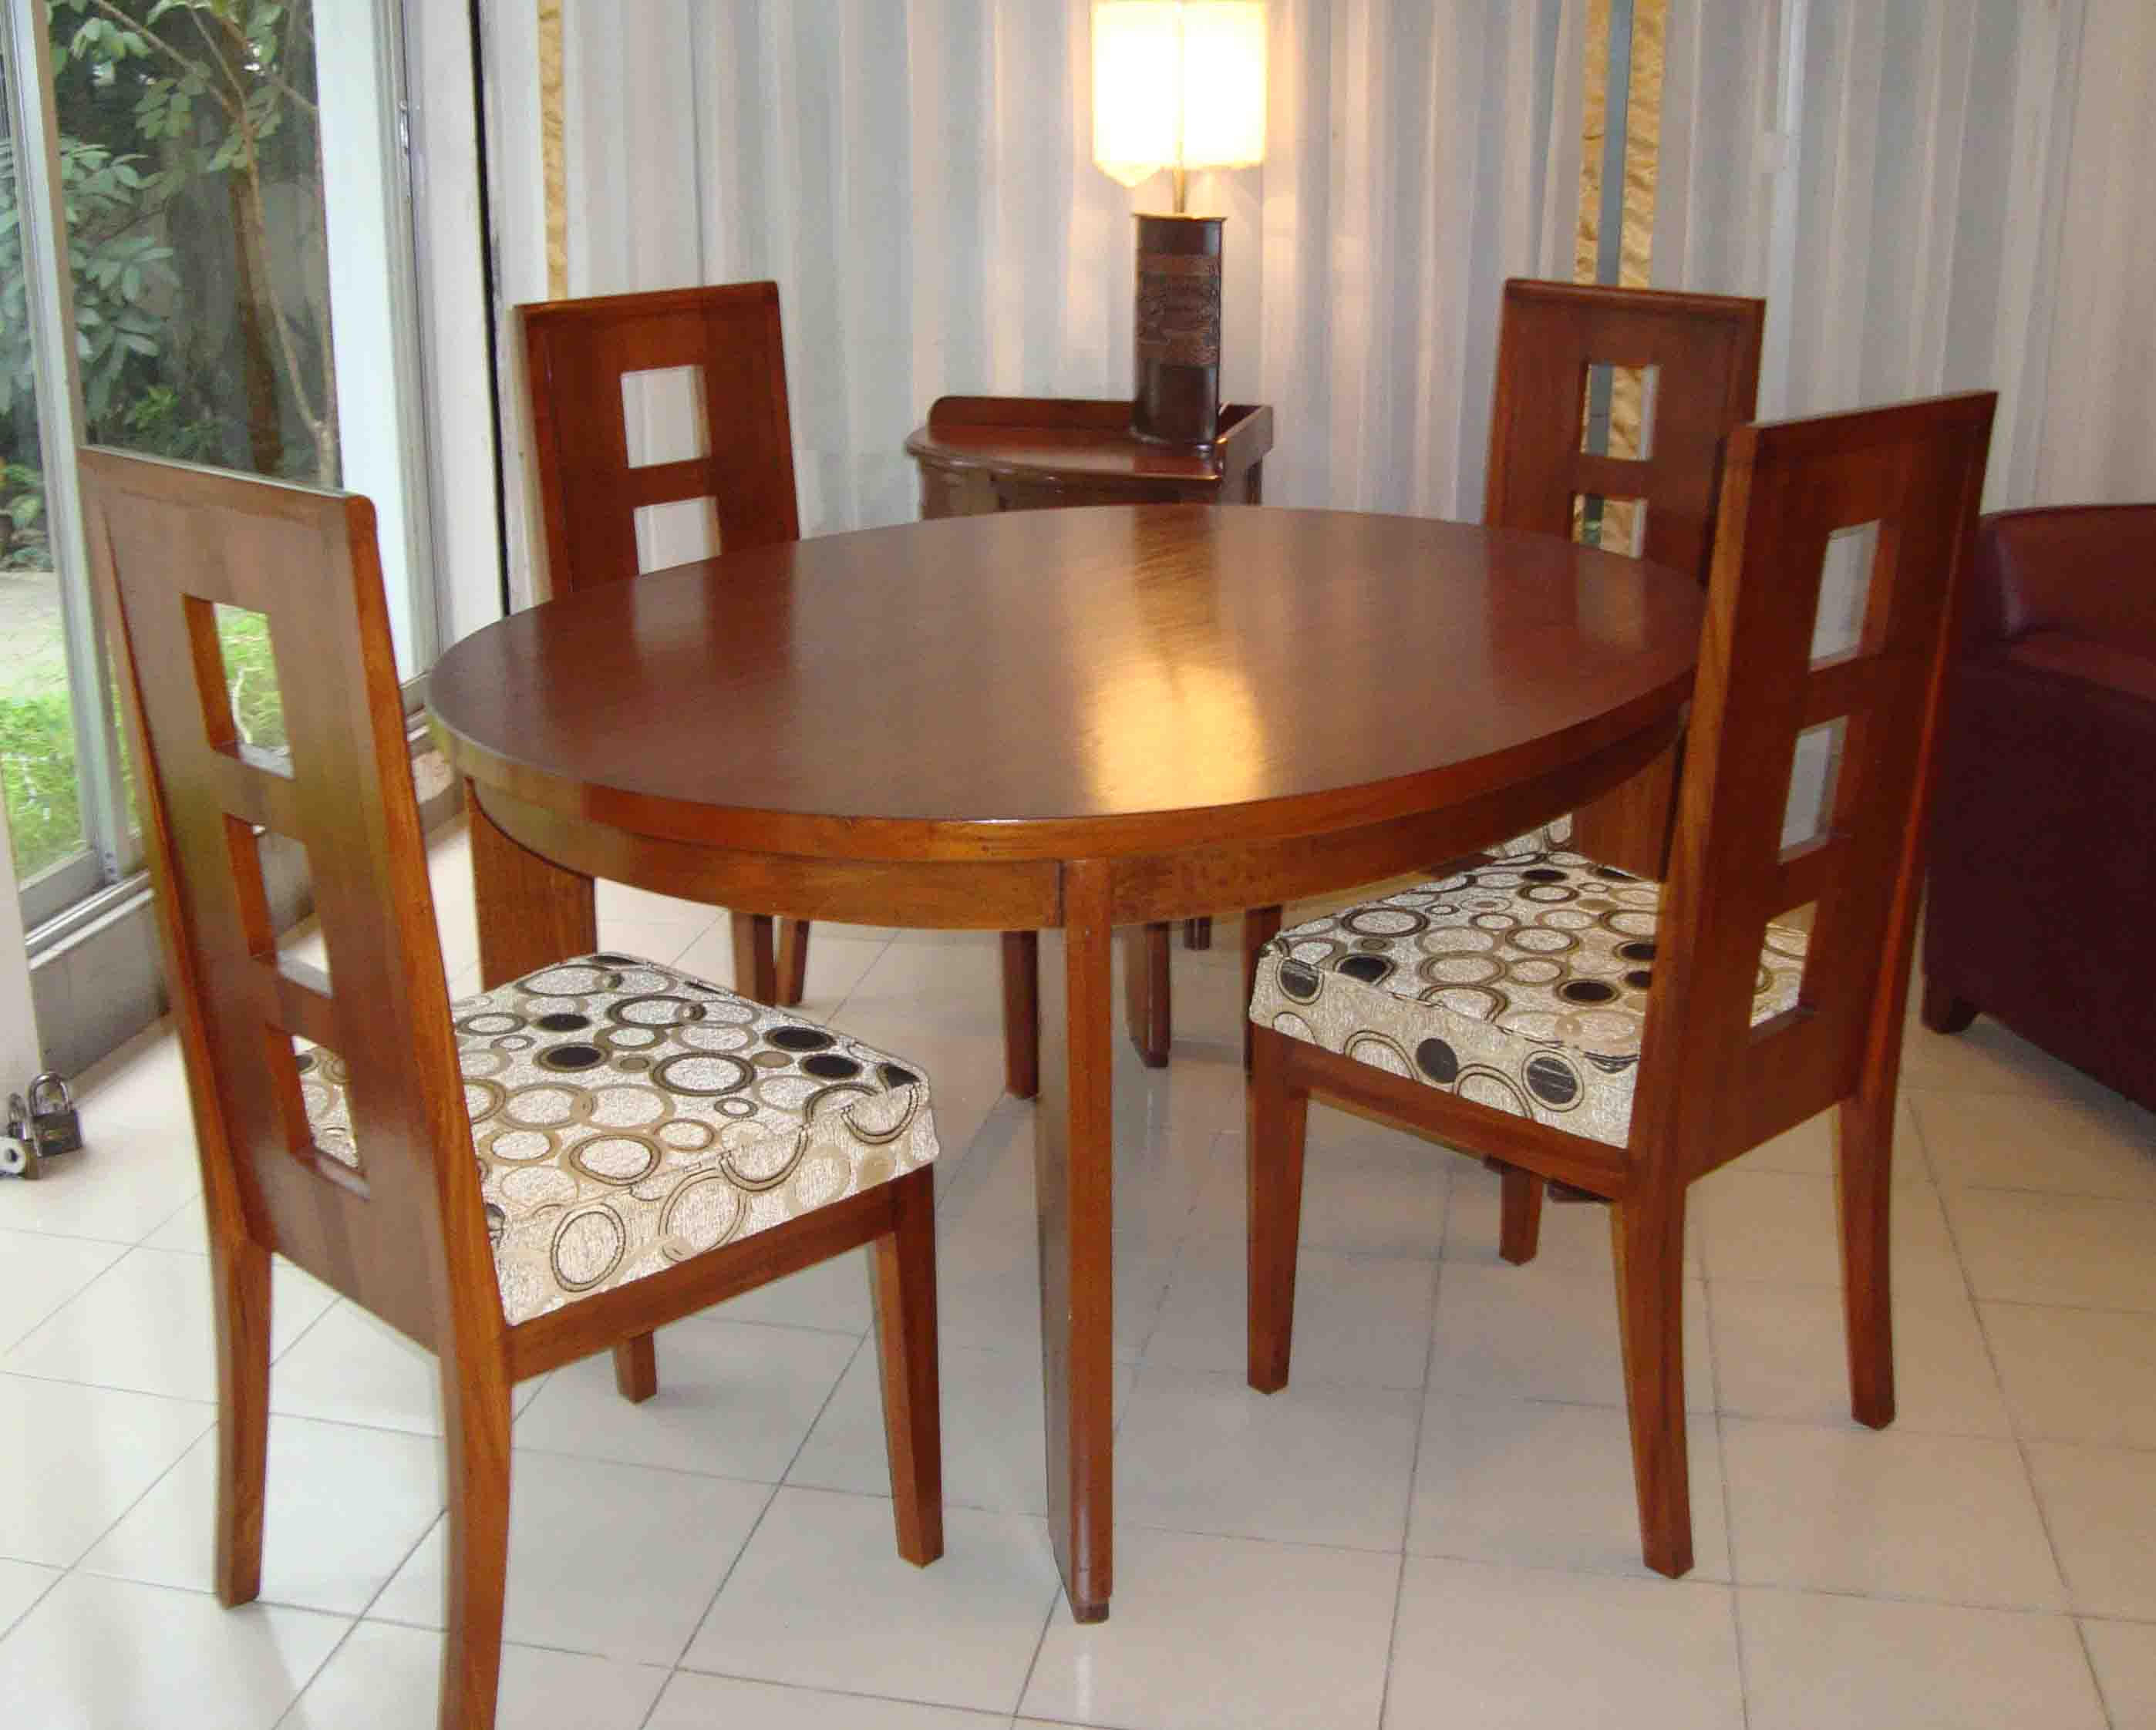 Nza Dining Table With 4 Chairs Made Of Solid Wood Brand New